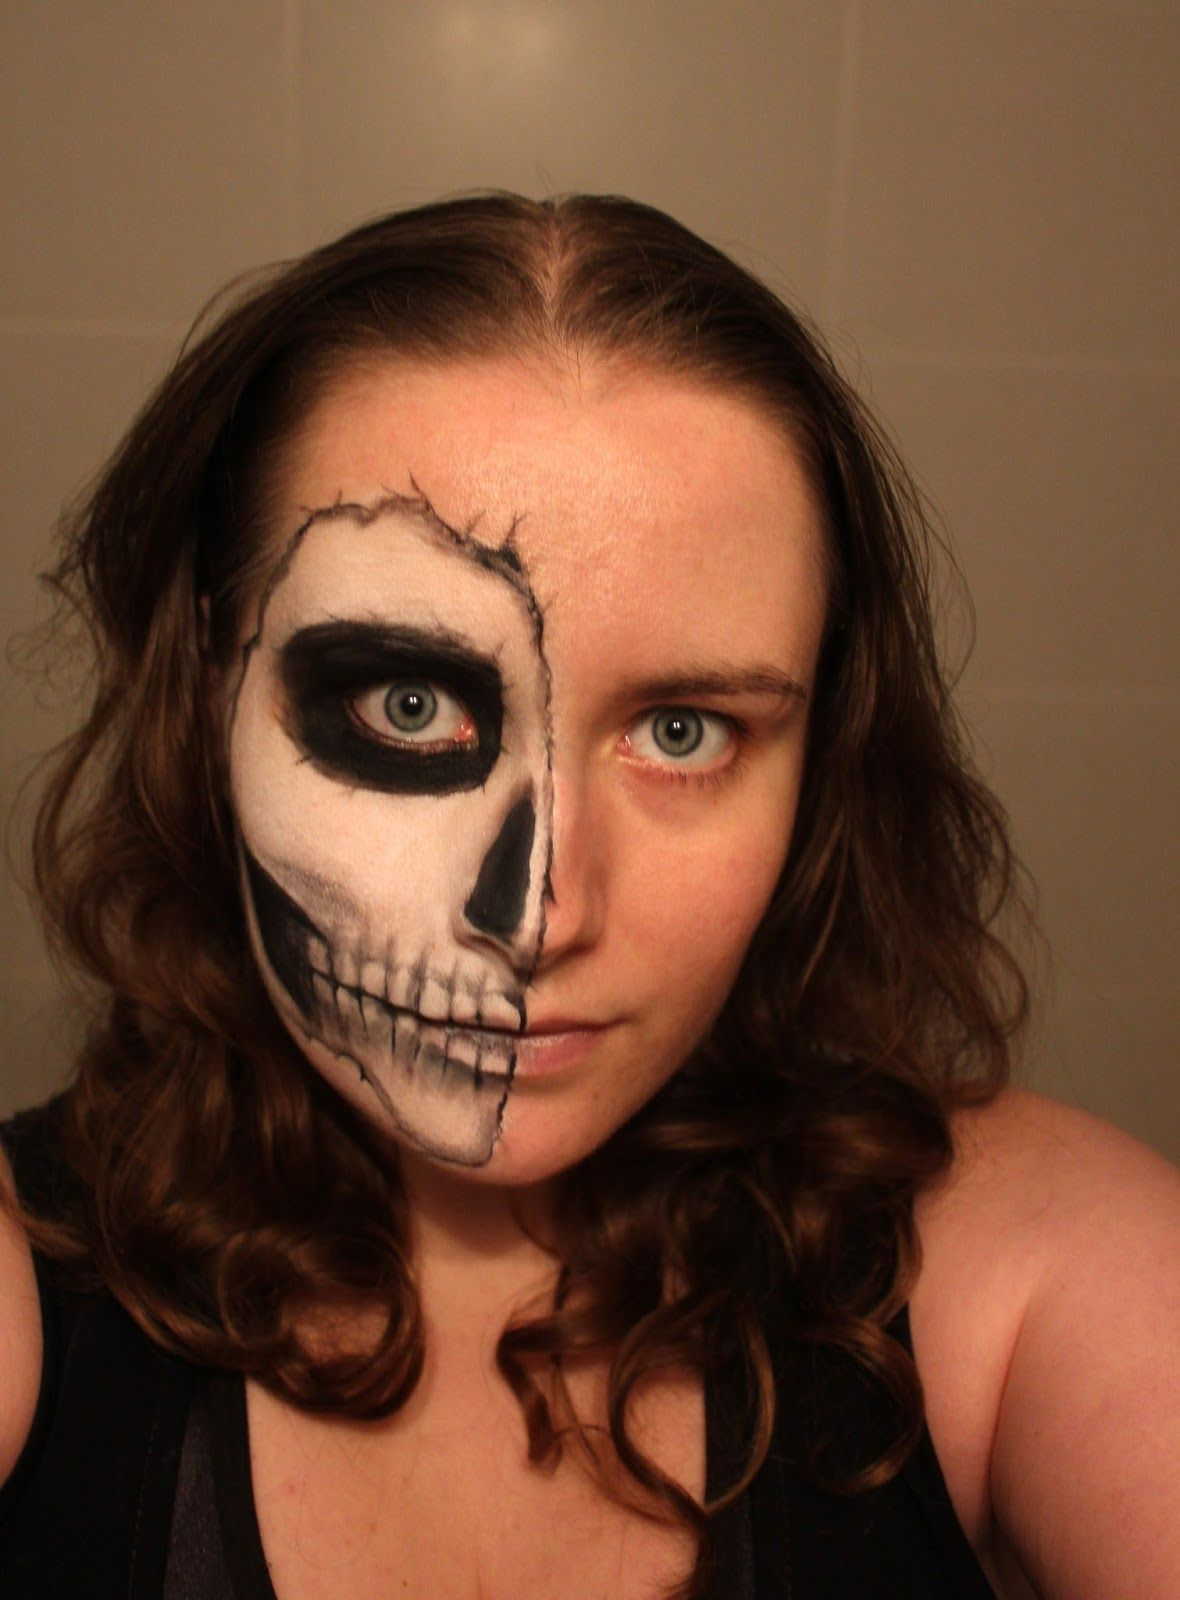 Skull Face Makeup (With images) Skull face makeup, Easy